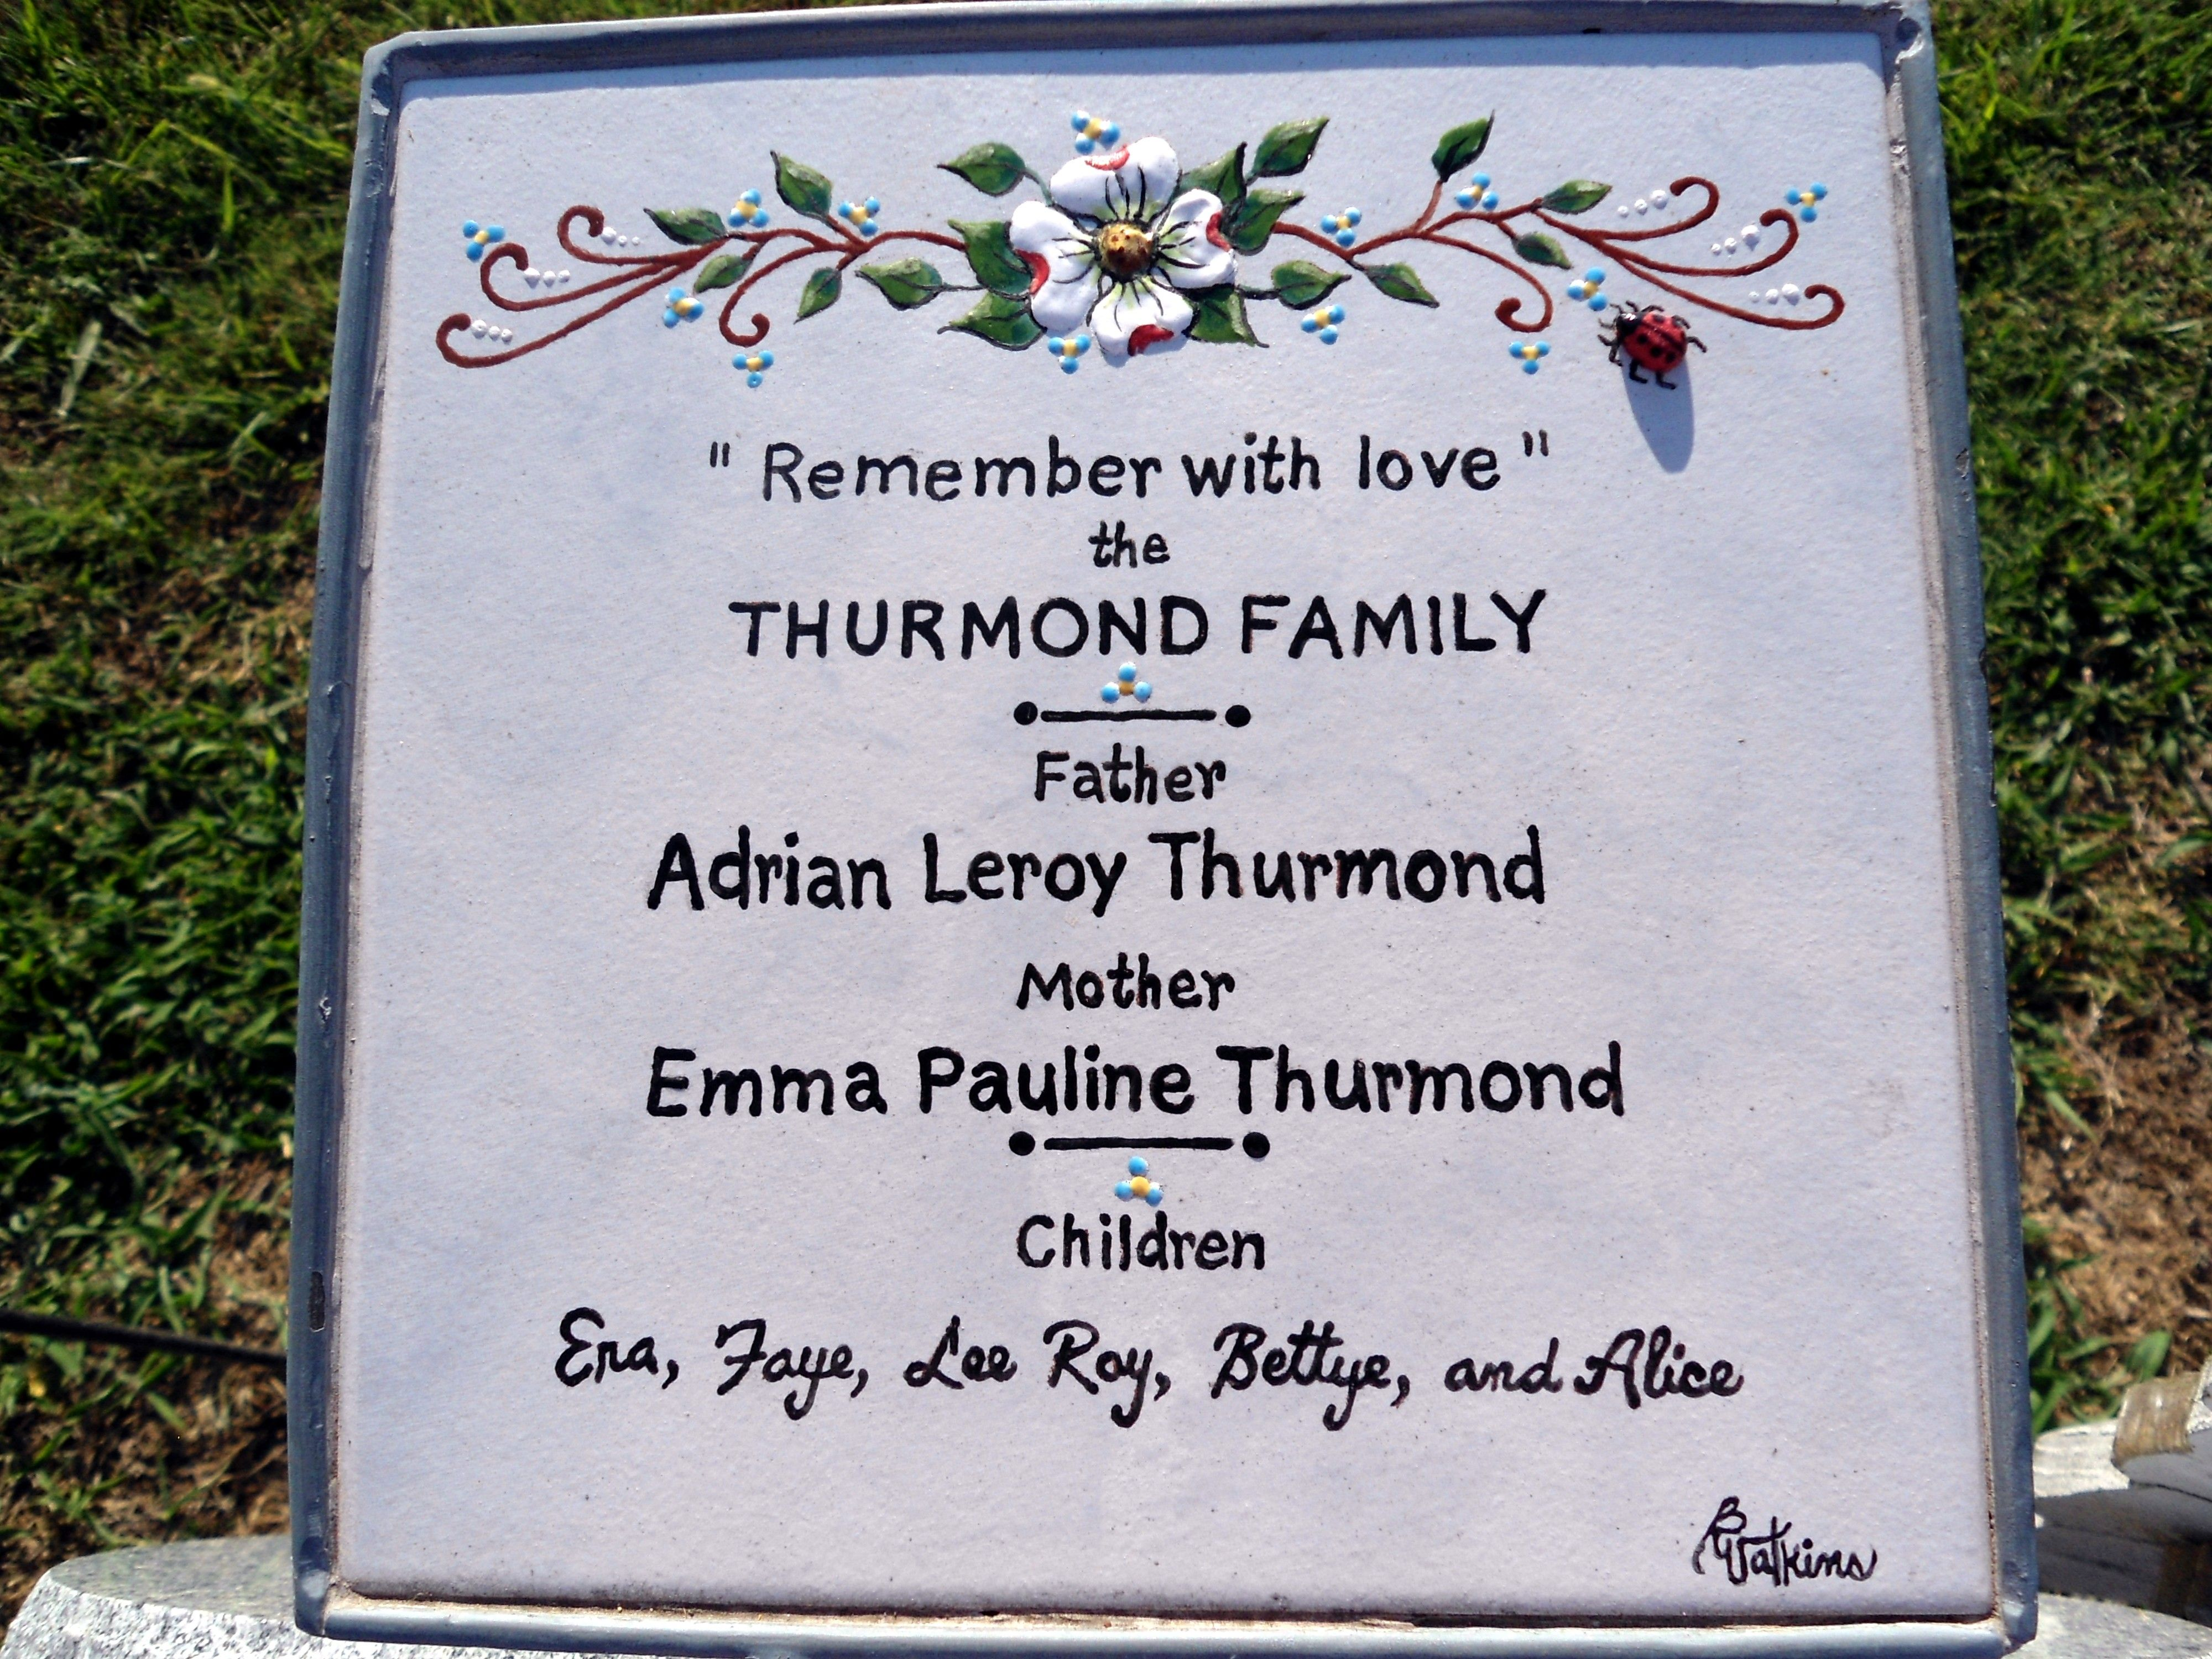 Another One Of My Ceramic Tile Grave Markers My Personal Hand - Ceramic photo tiles headstone